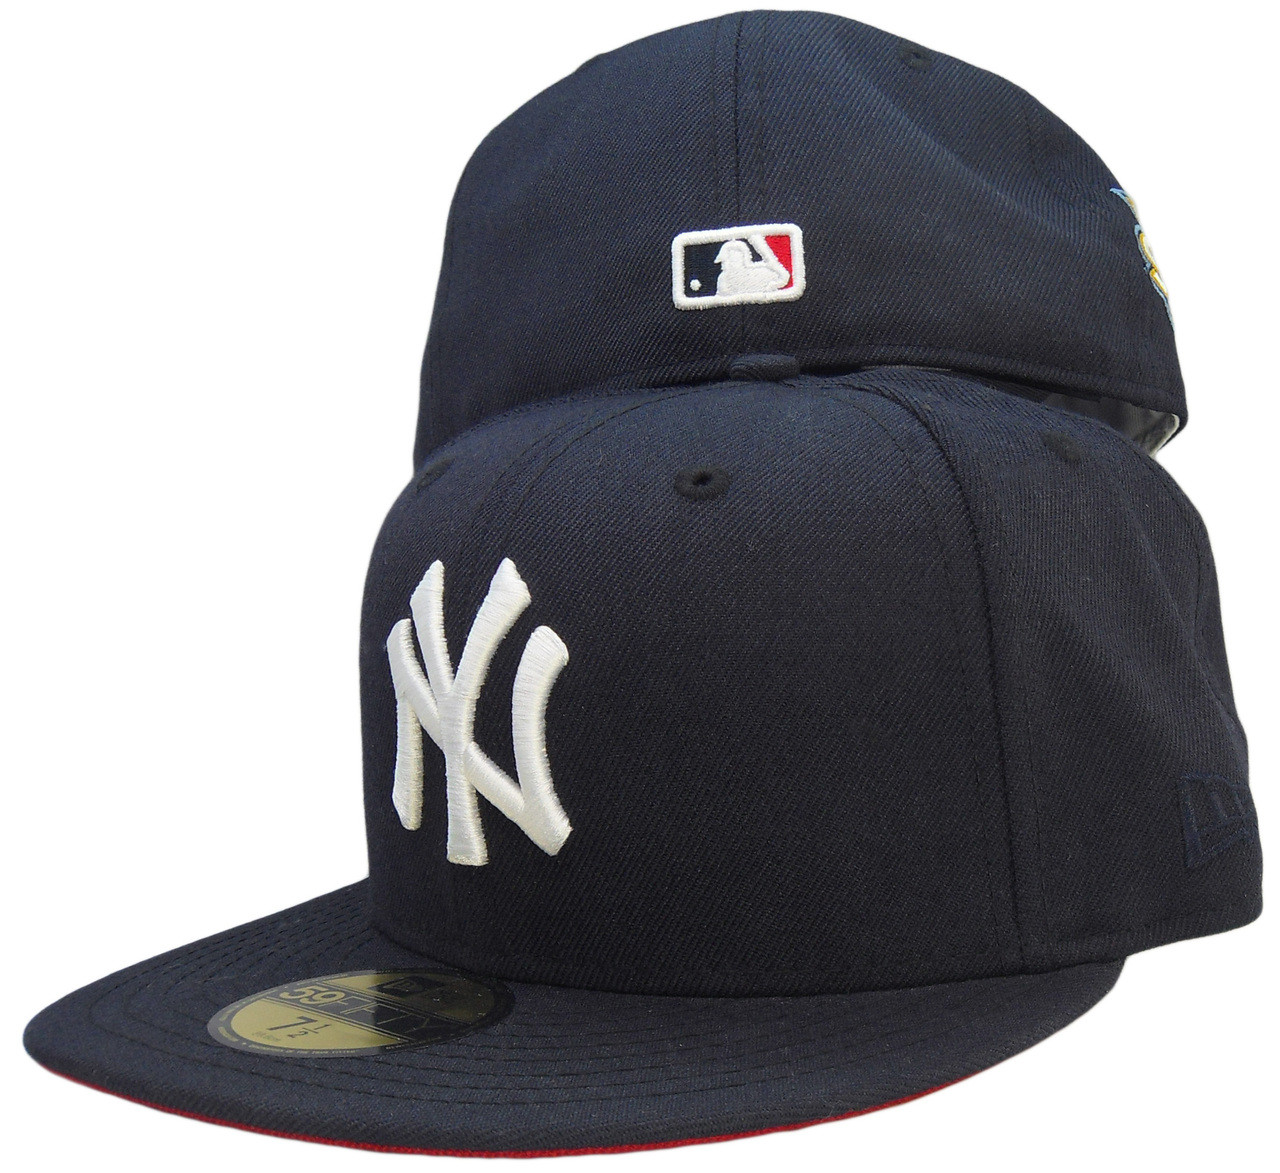 82fc972757ce0 New York Yankees New Era 59Fifty Fitted Hat - Navy Blue